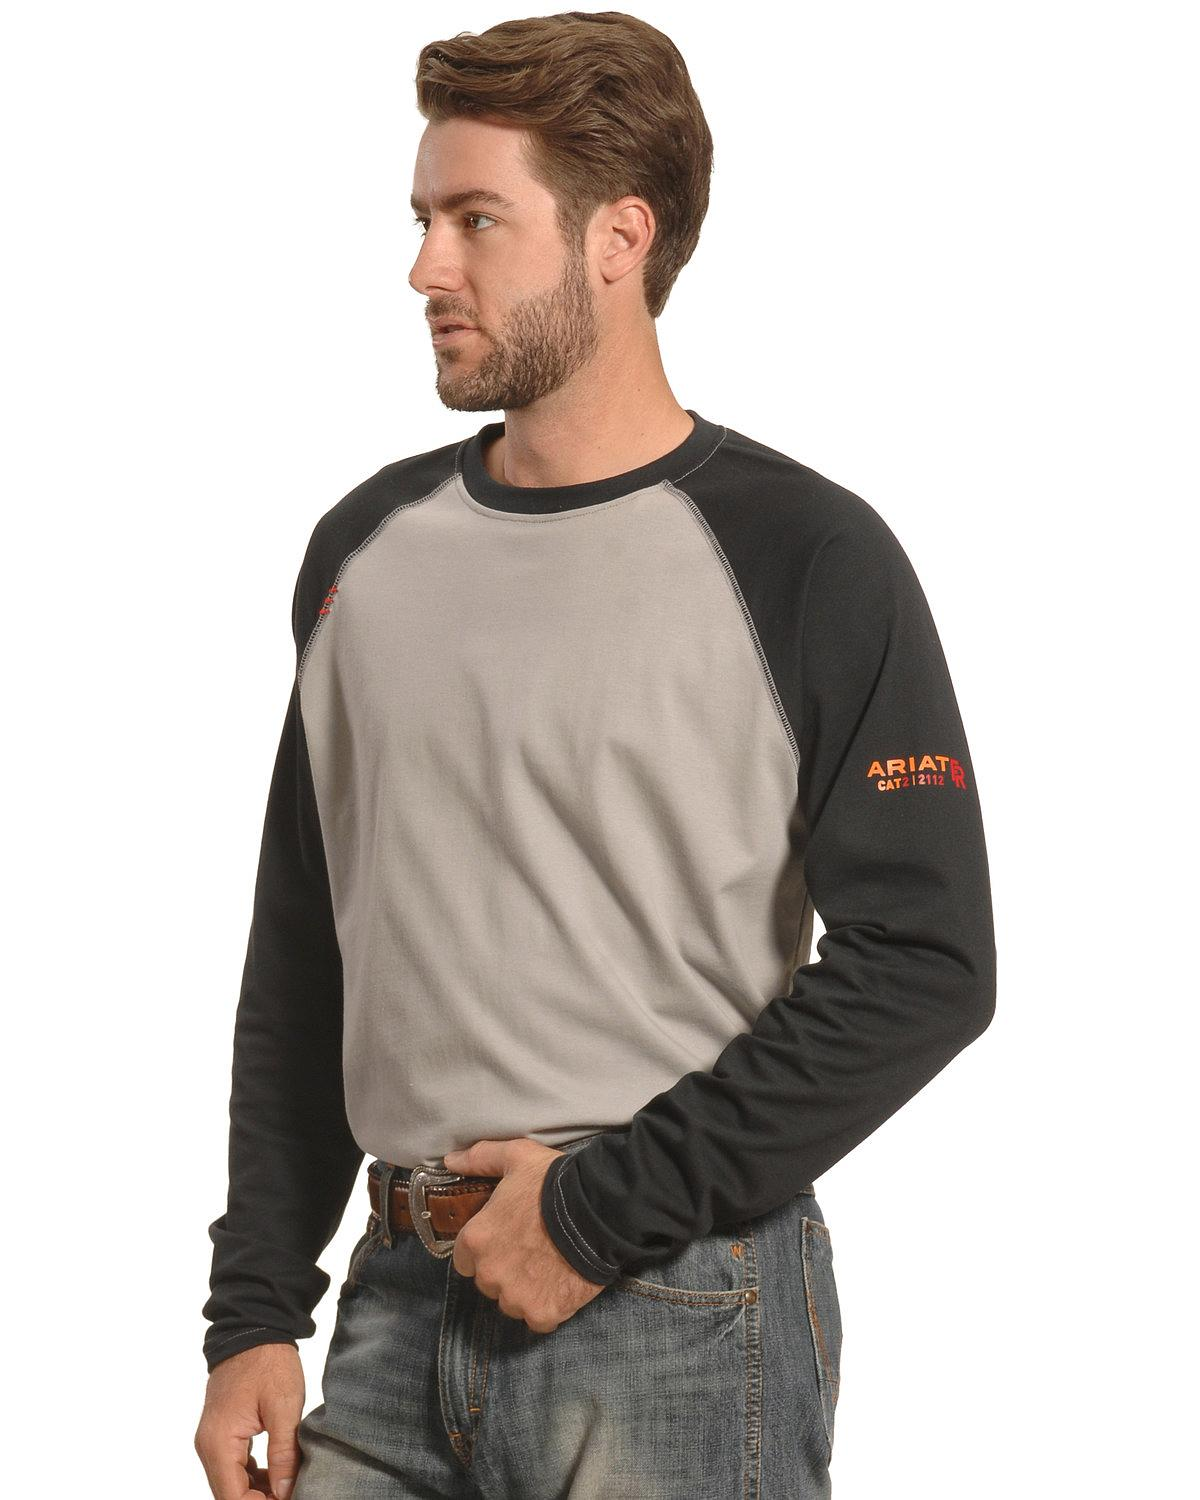 In Rosegal we have a big selection of mens shirts and long sleeves for you: long sleeve shirts, long sleeve t-shirts, black long sleeve shirt, white long sleeve shirt, polo long sleeve t-shirt, mens long sleeve polo shirts.